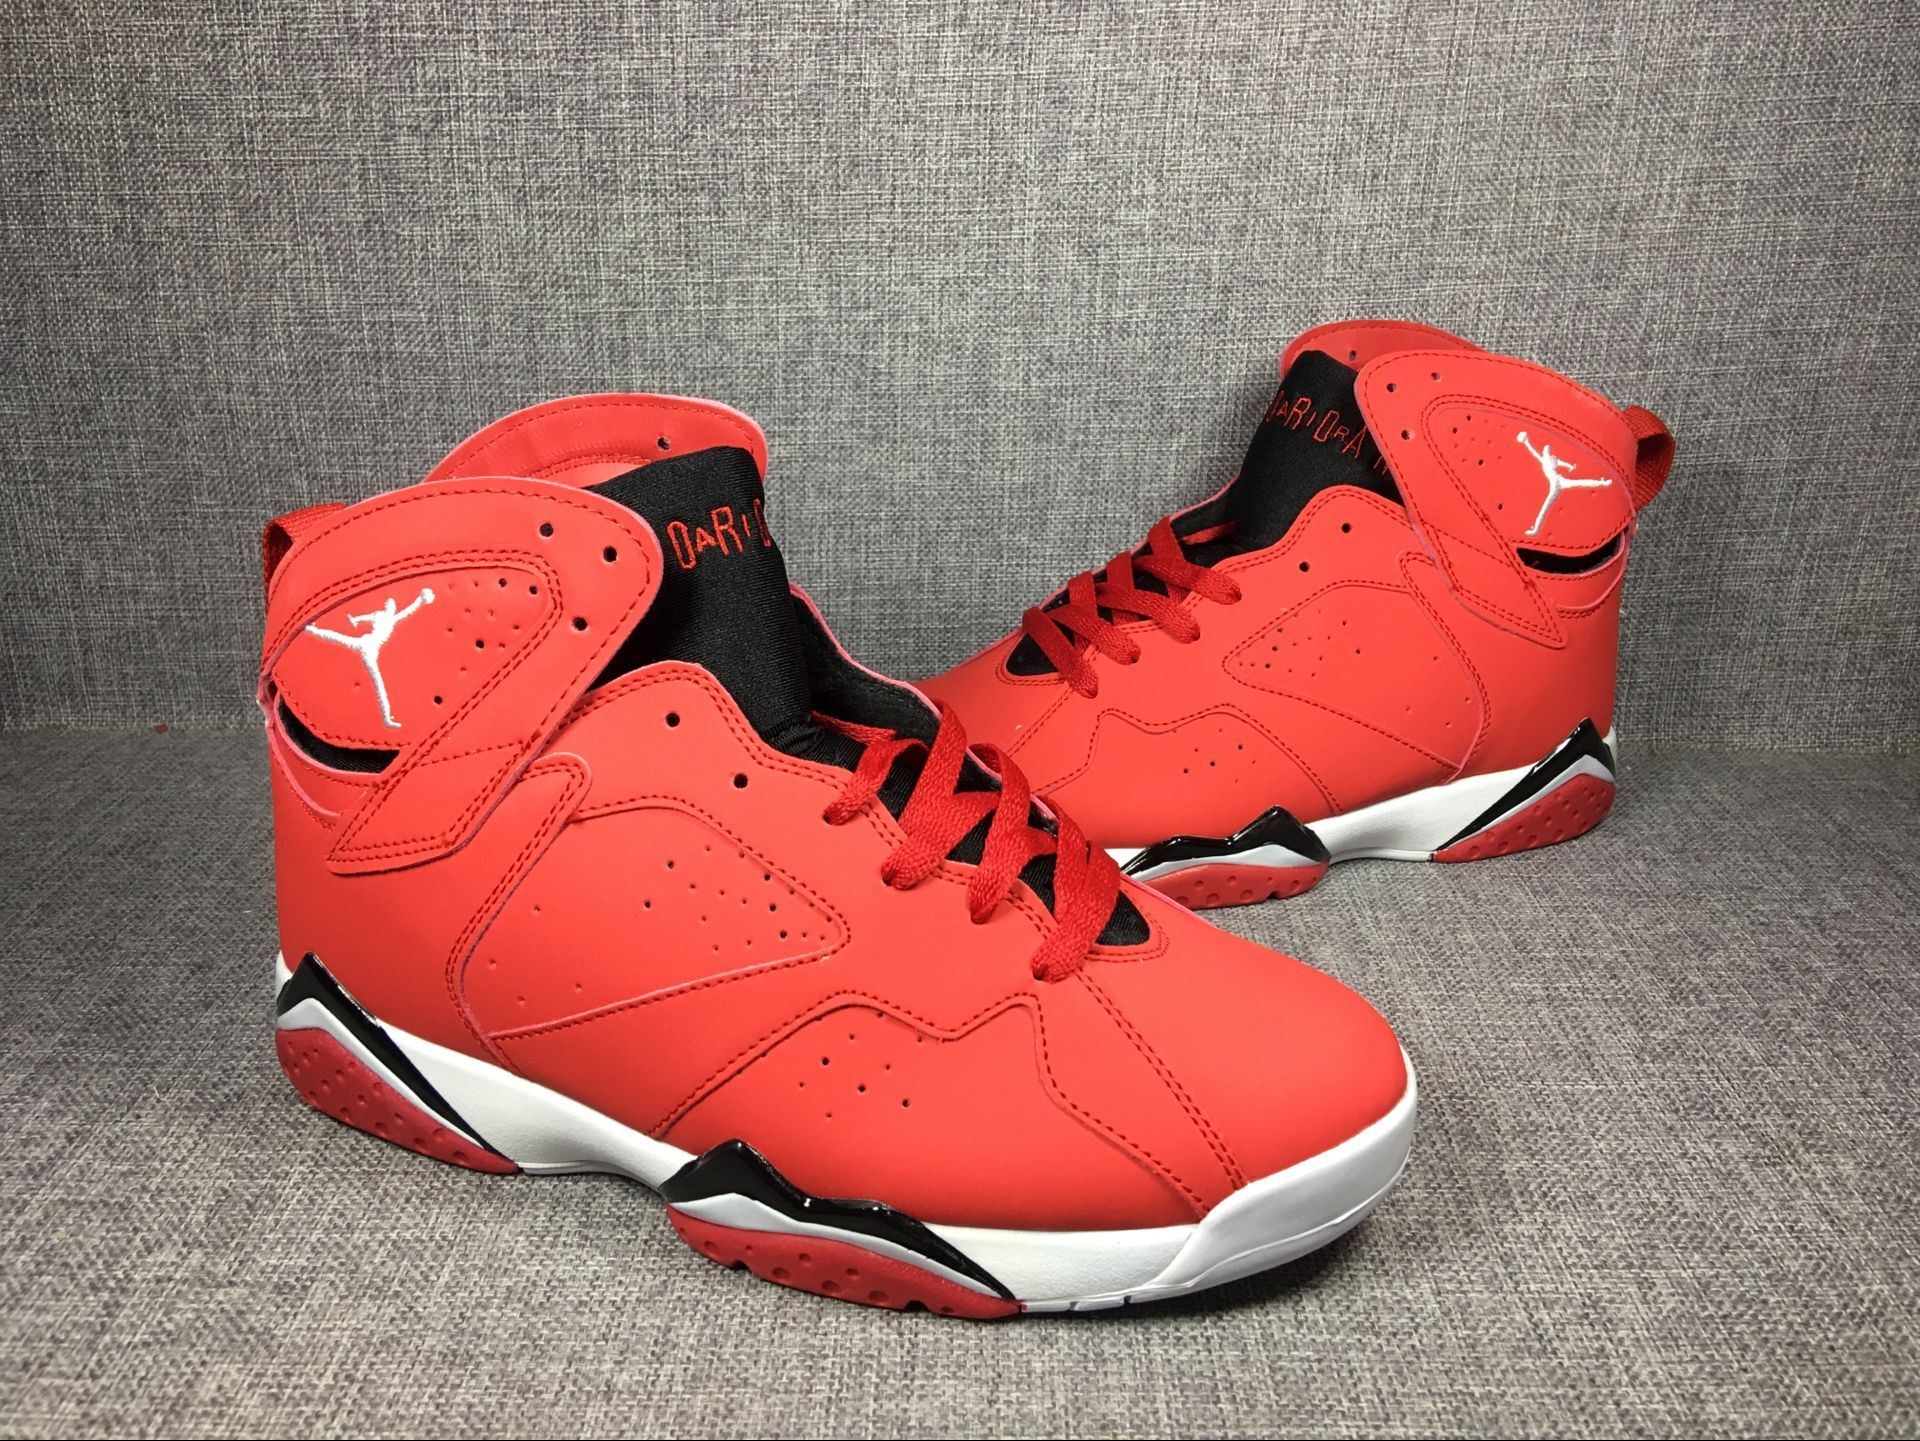 2017 Men Air Jordan 7 Red Black White Shoes